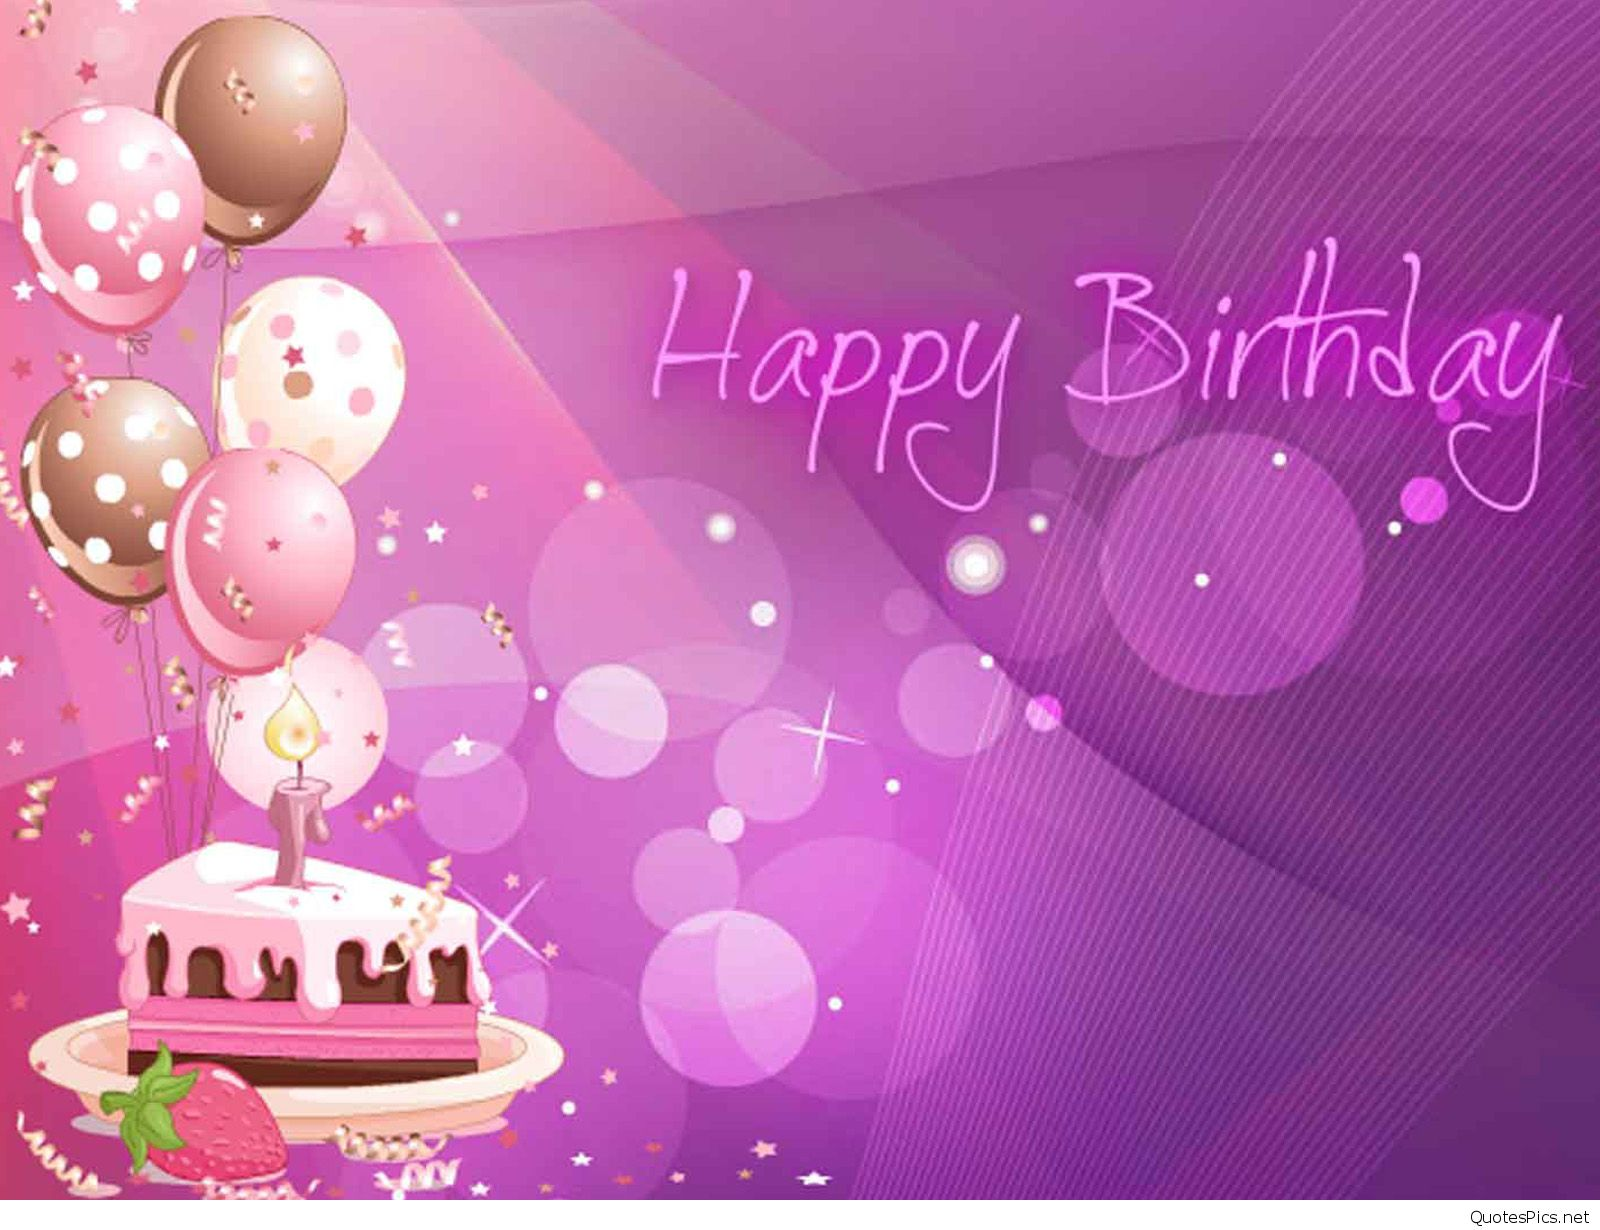 birthday wishes background wallpaper ; Happy-birthday-wishes-hd-wallpapers